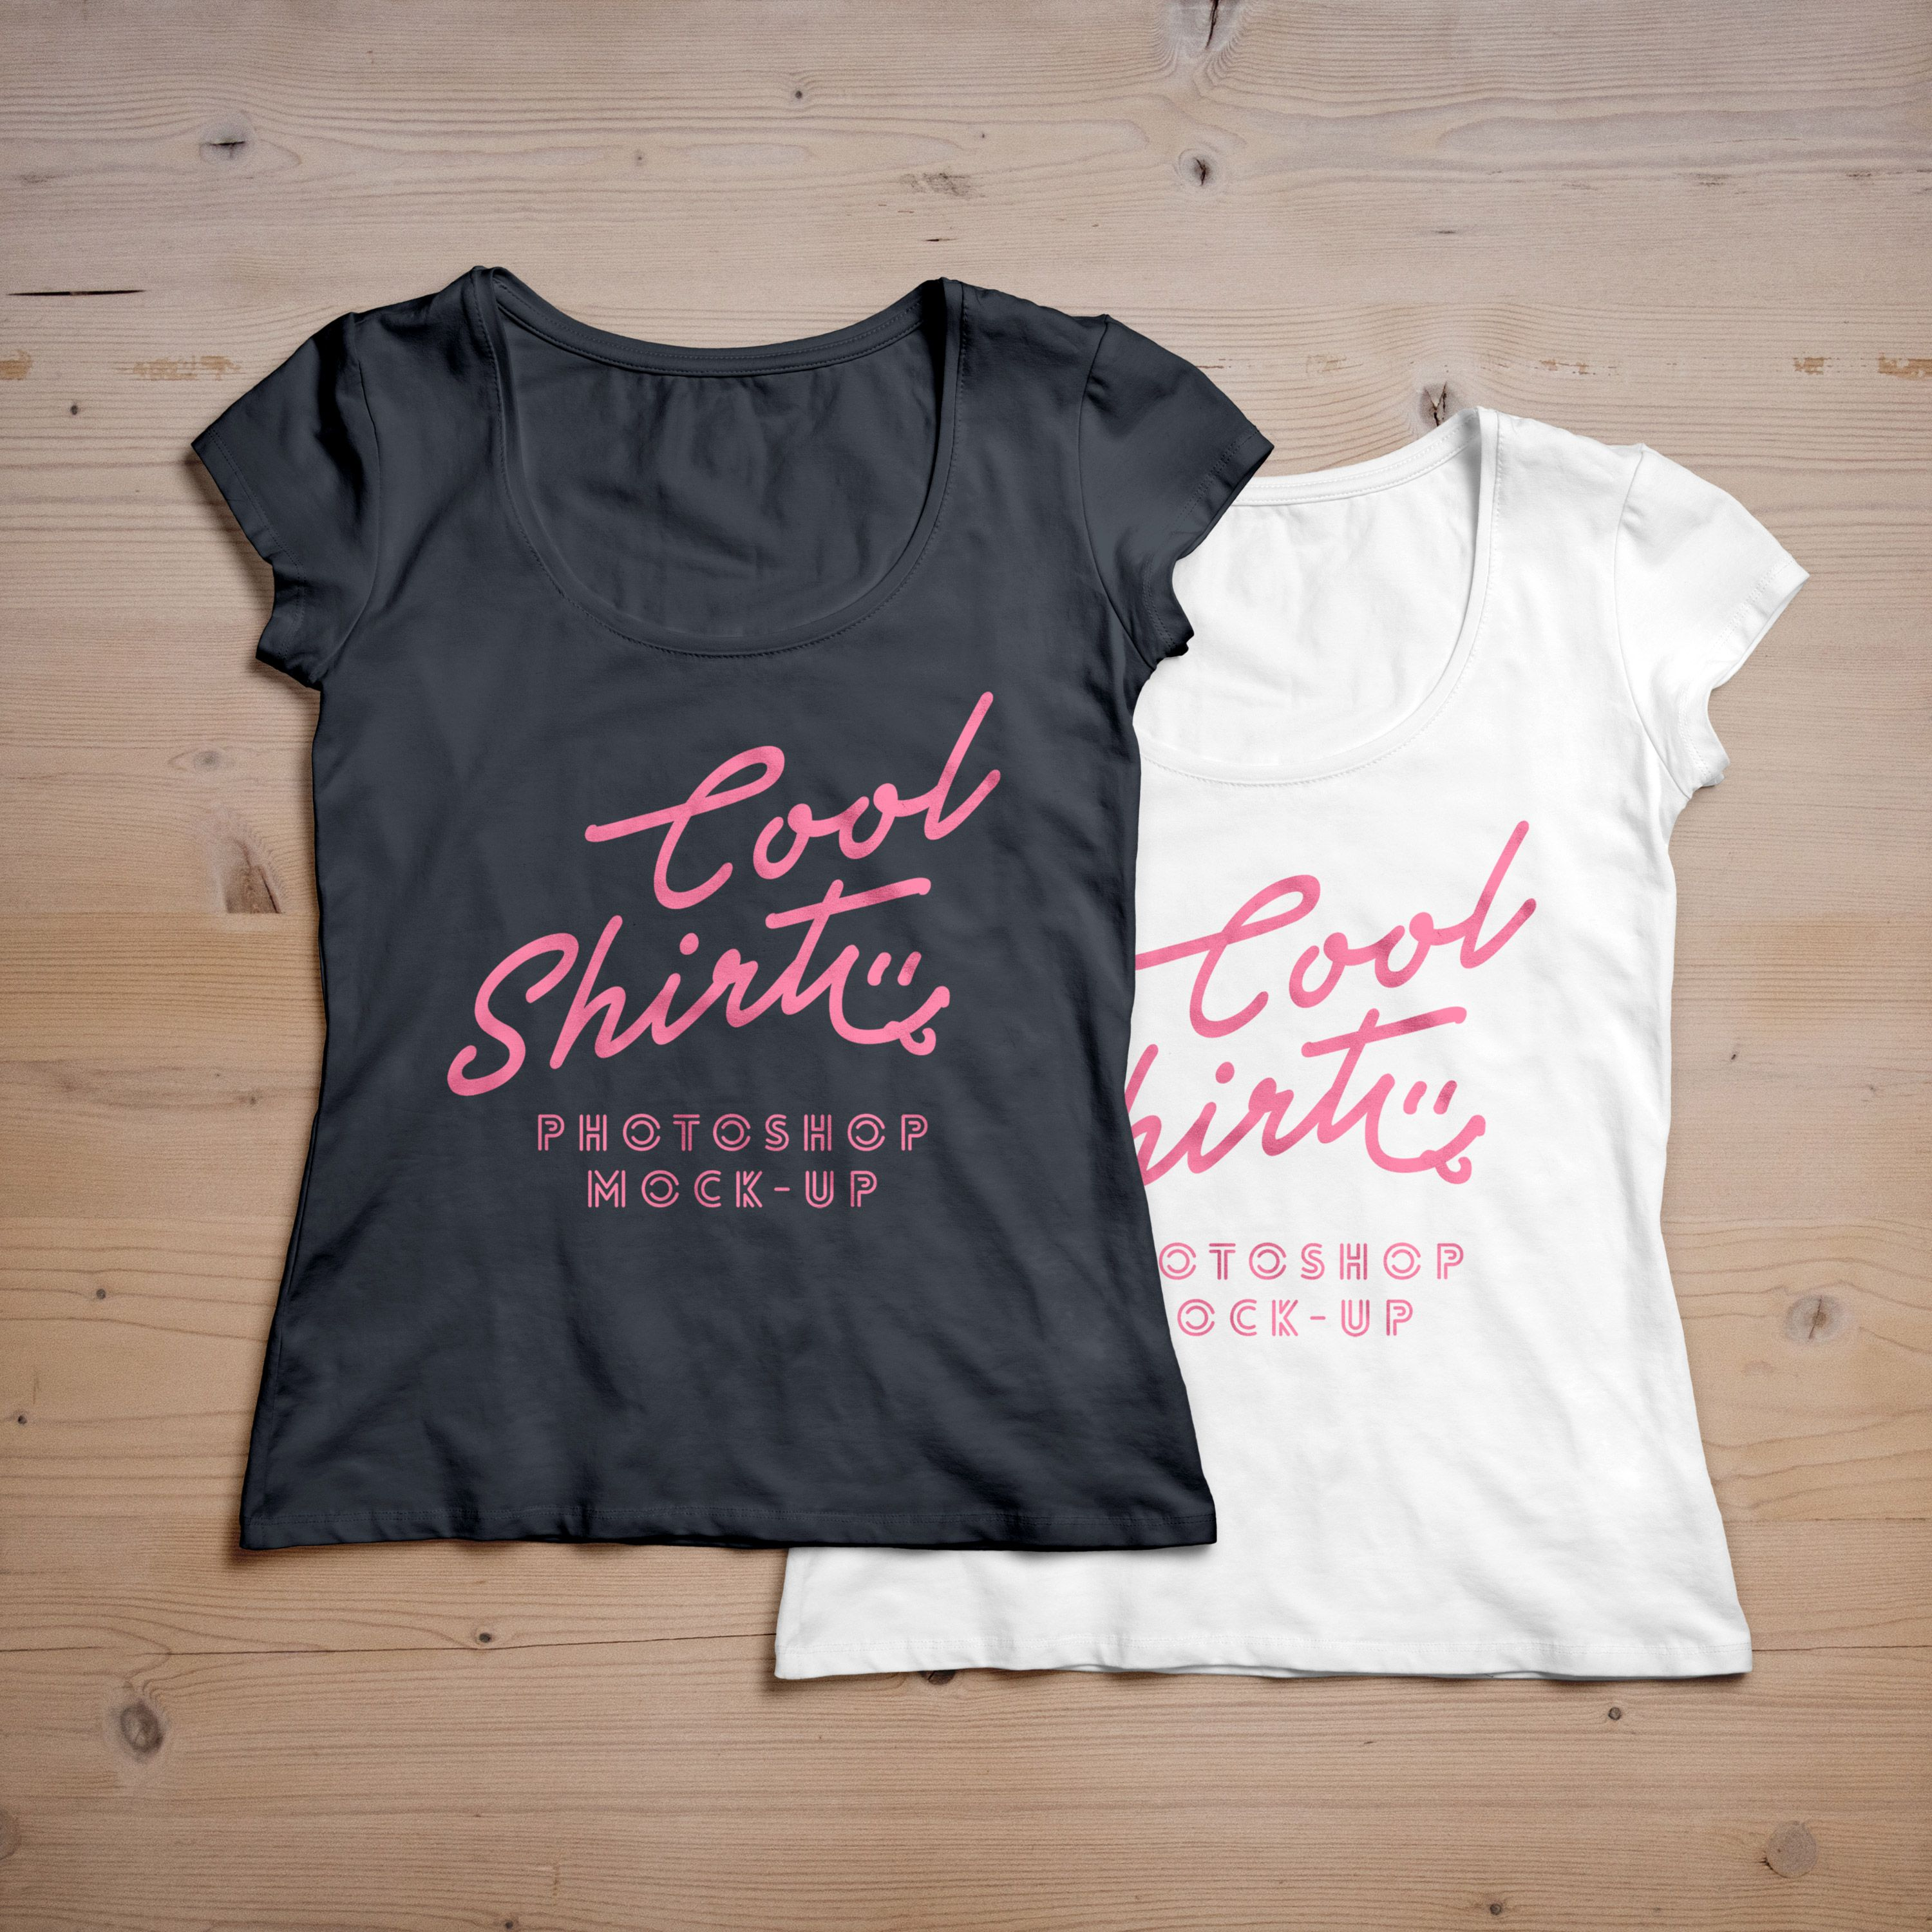 100 T Shirt Templates That Will Make Your Life Easier T Shirt